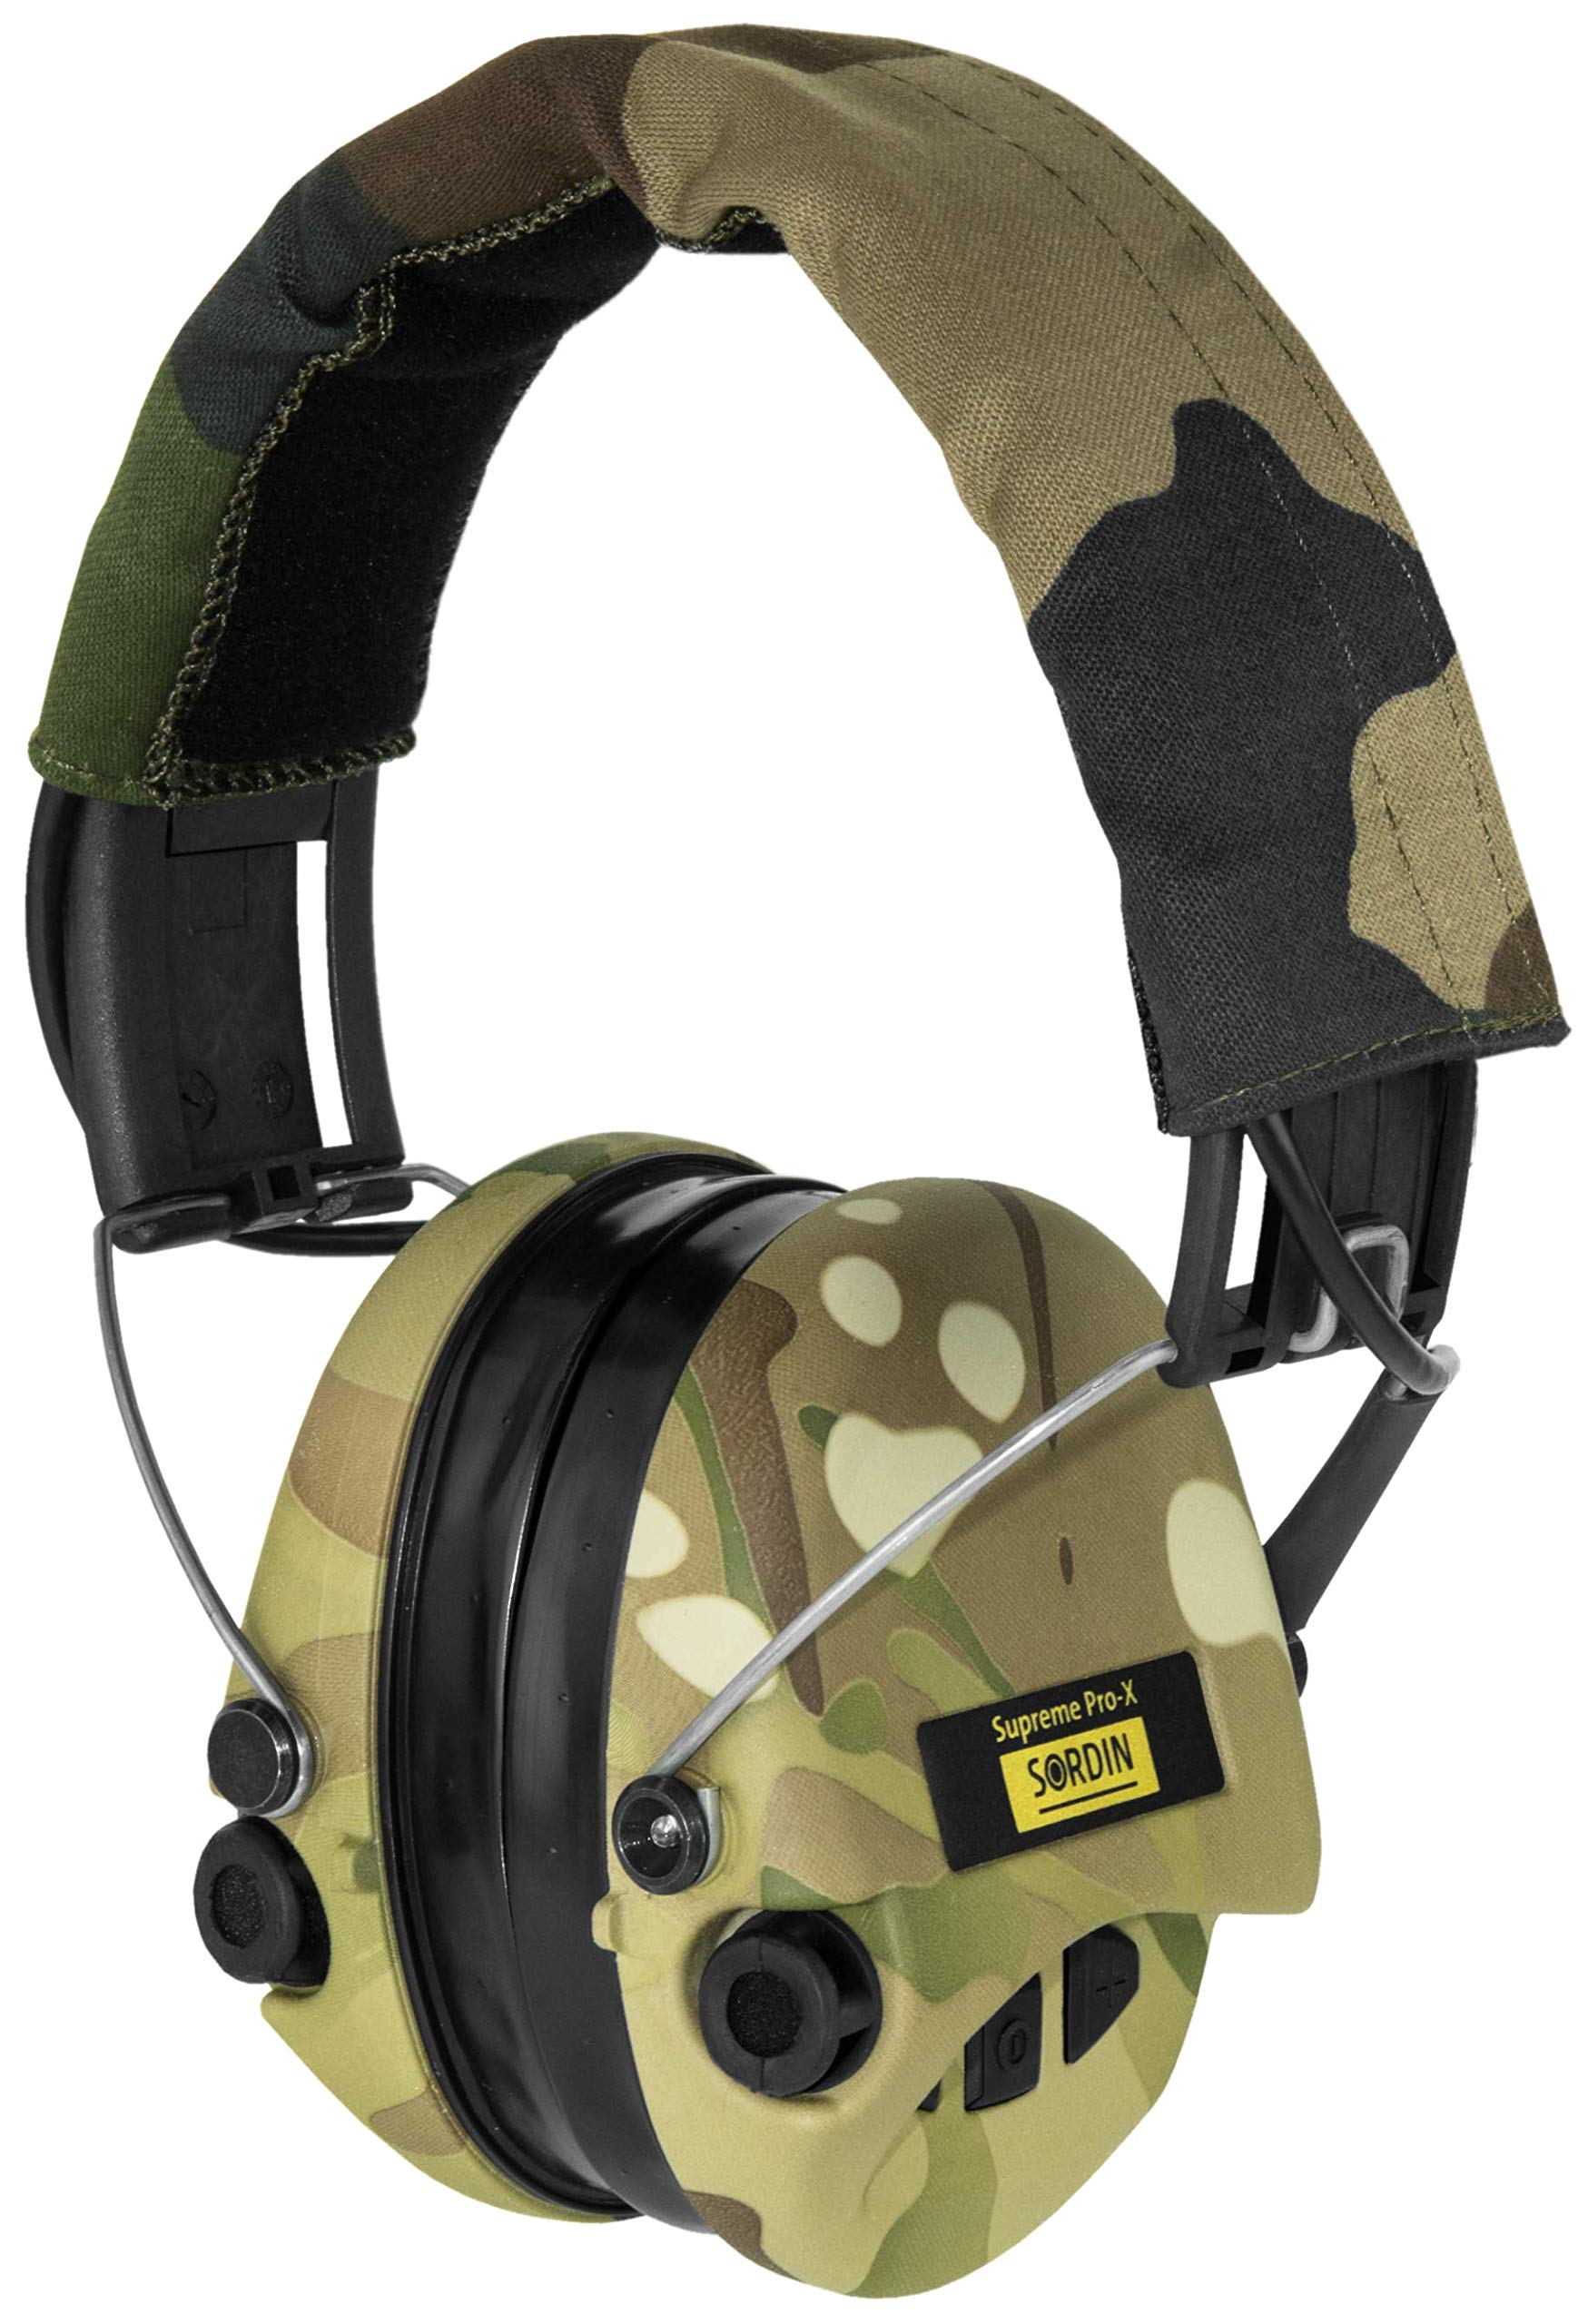 Sordin Supreme PRO X, Noise Reduction Active Safety Ear Muffs with LED light, Adjustable Hearing Protection for Shooting, Hunting, Work, Gel Seals, Camo Headband and Cups